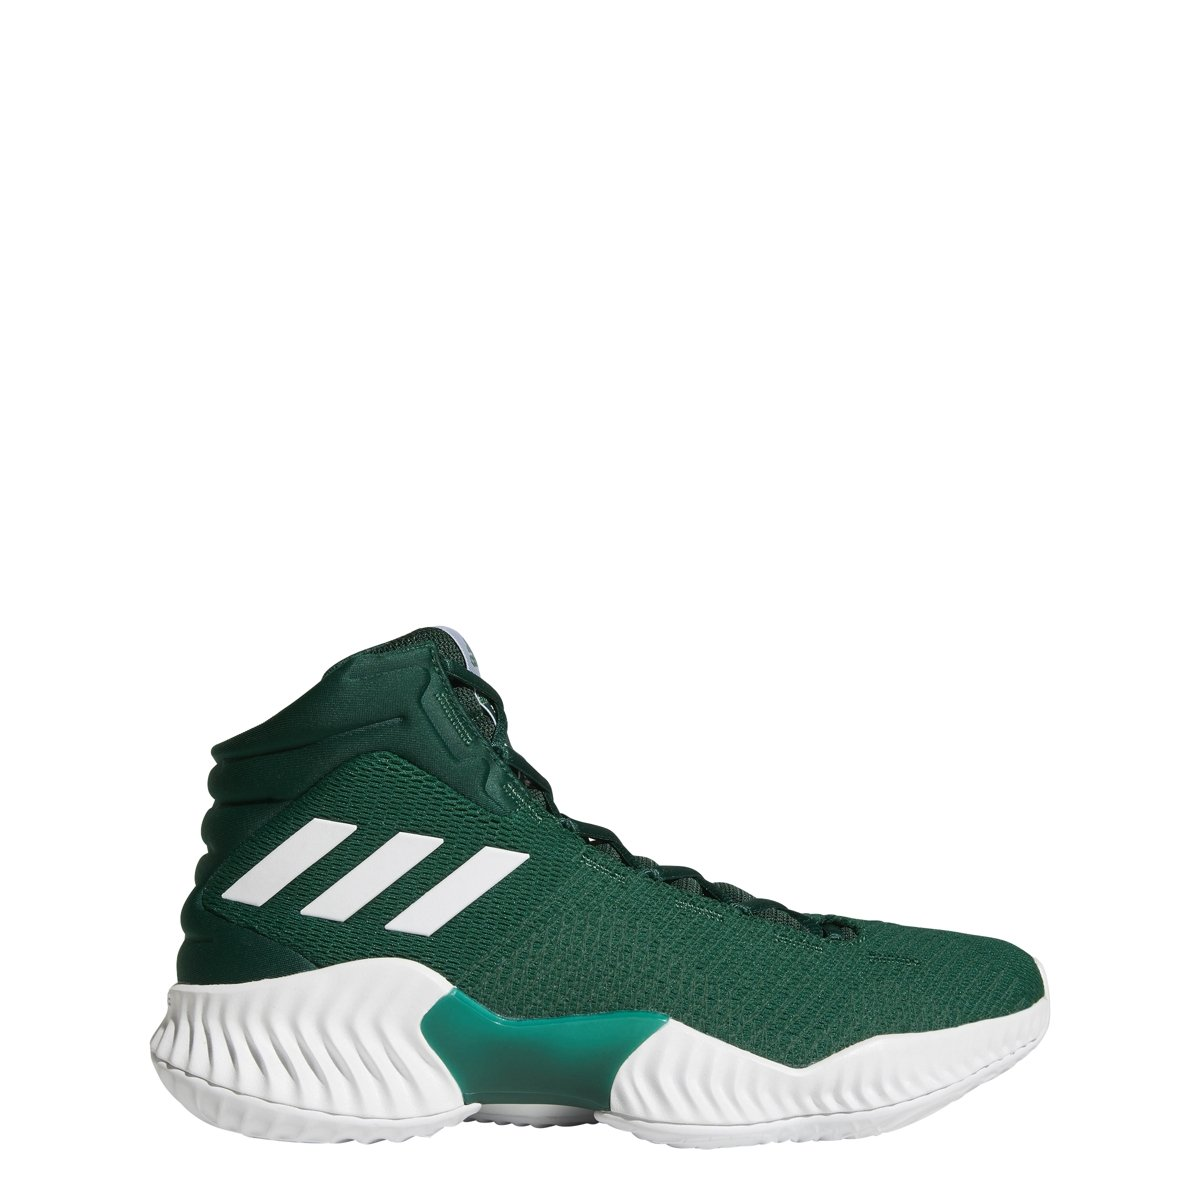 adidas Men's Pro Bounce 2018 Basketball Shoe, Dark Green, 5 M US